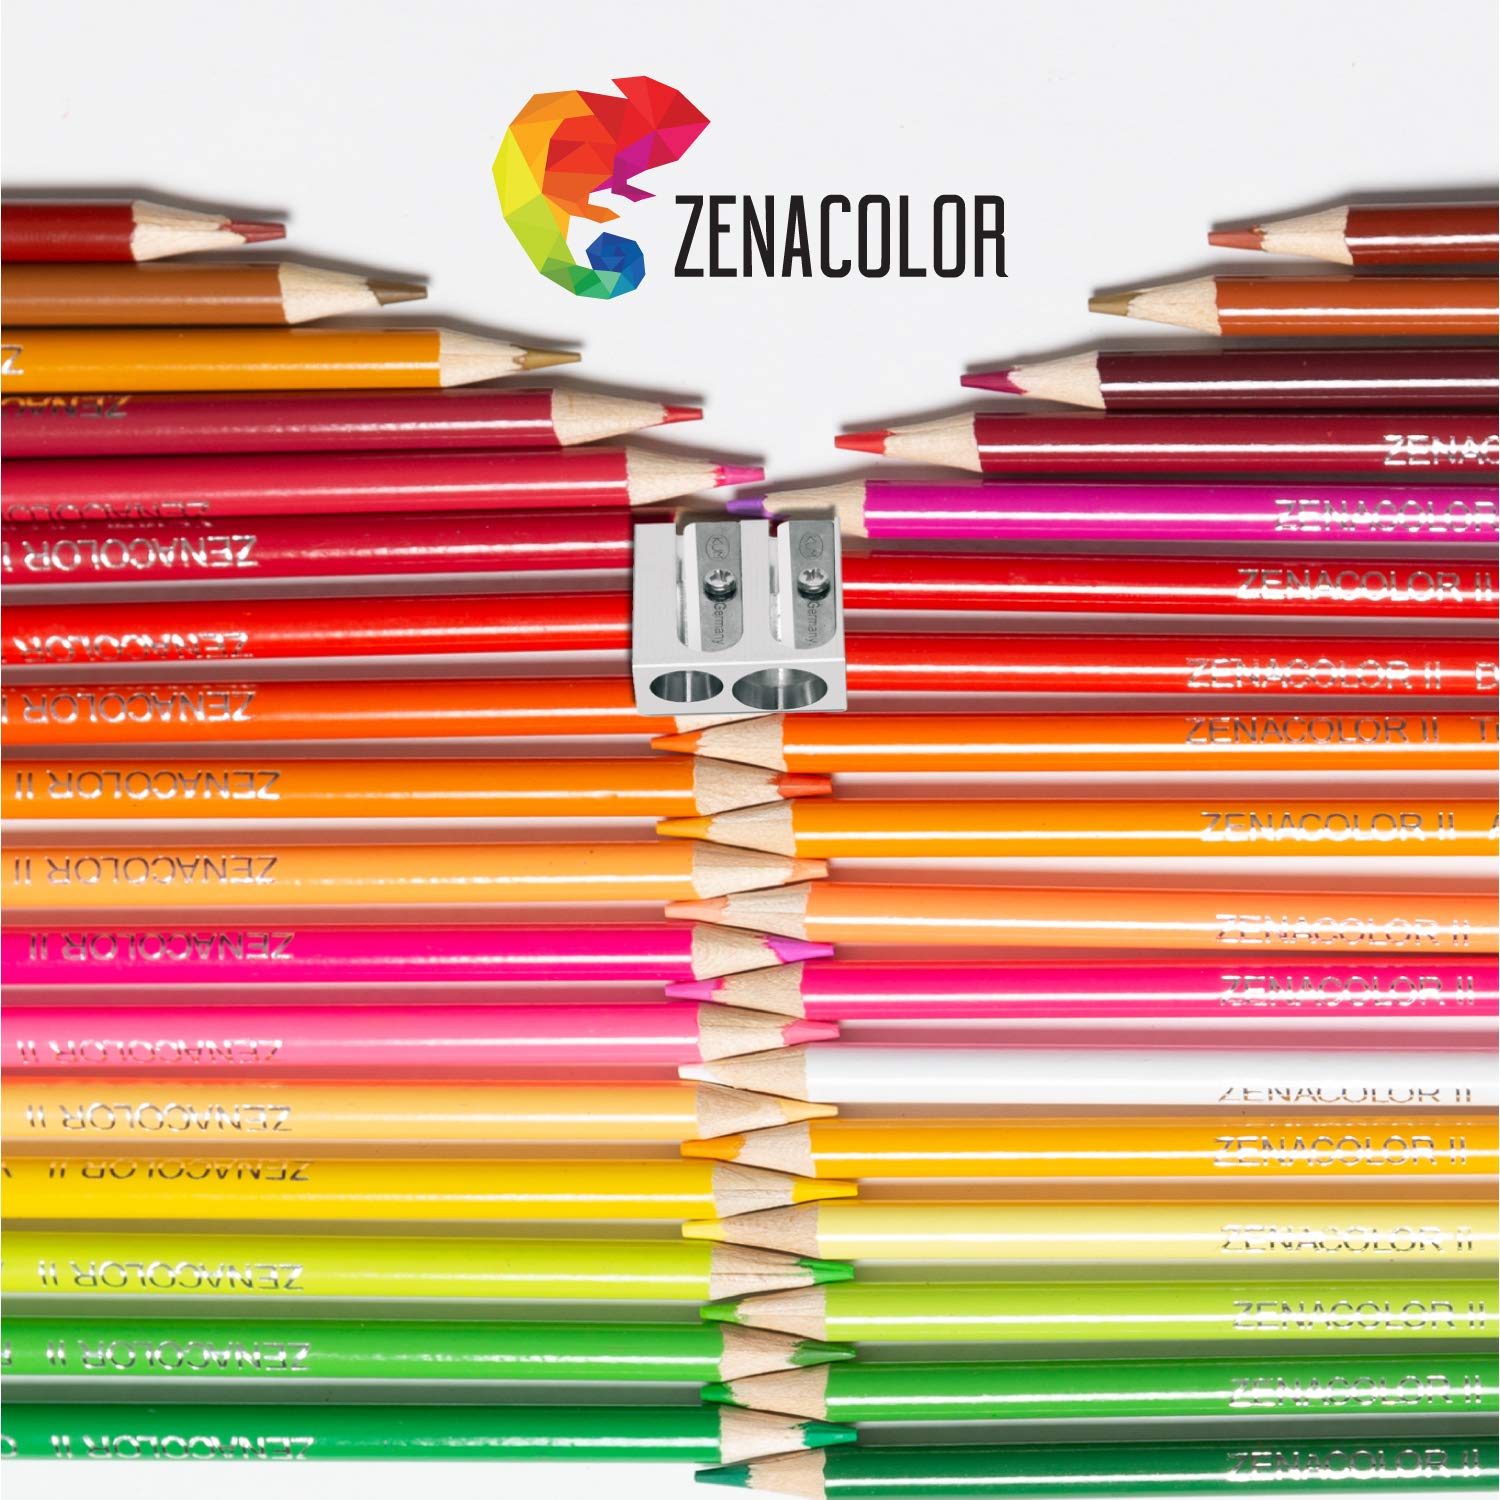 72 Watercolor Pencils Professional, Numbered, with a Brush and Metal Box - 72 Water Color Pencils for Adults and Adult Coloring Books - Watercolor Pencil for Kids, Colored Pencils, Art Set 81kbnwUfQqL